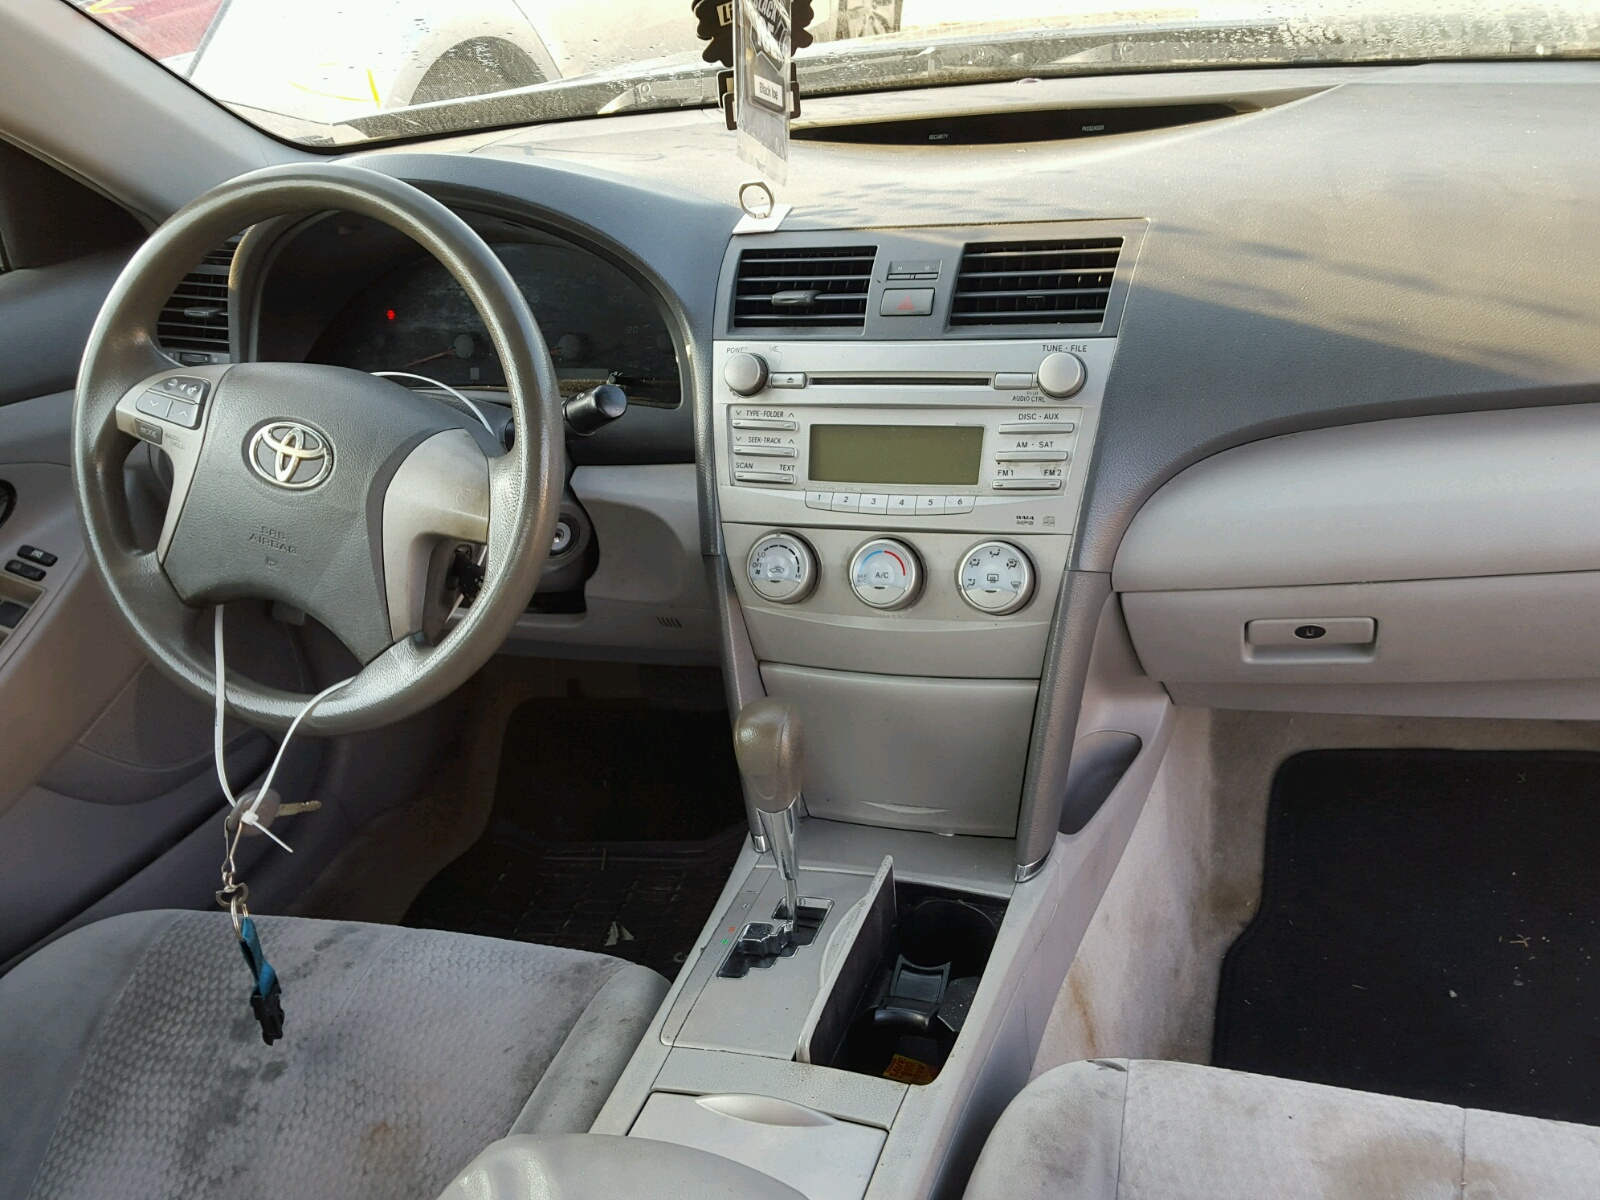 4t1bf3ek2bu204566 2011 Gray Toyota Camry Base On Sale In Nc Interior 25l Engine View